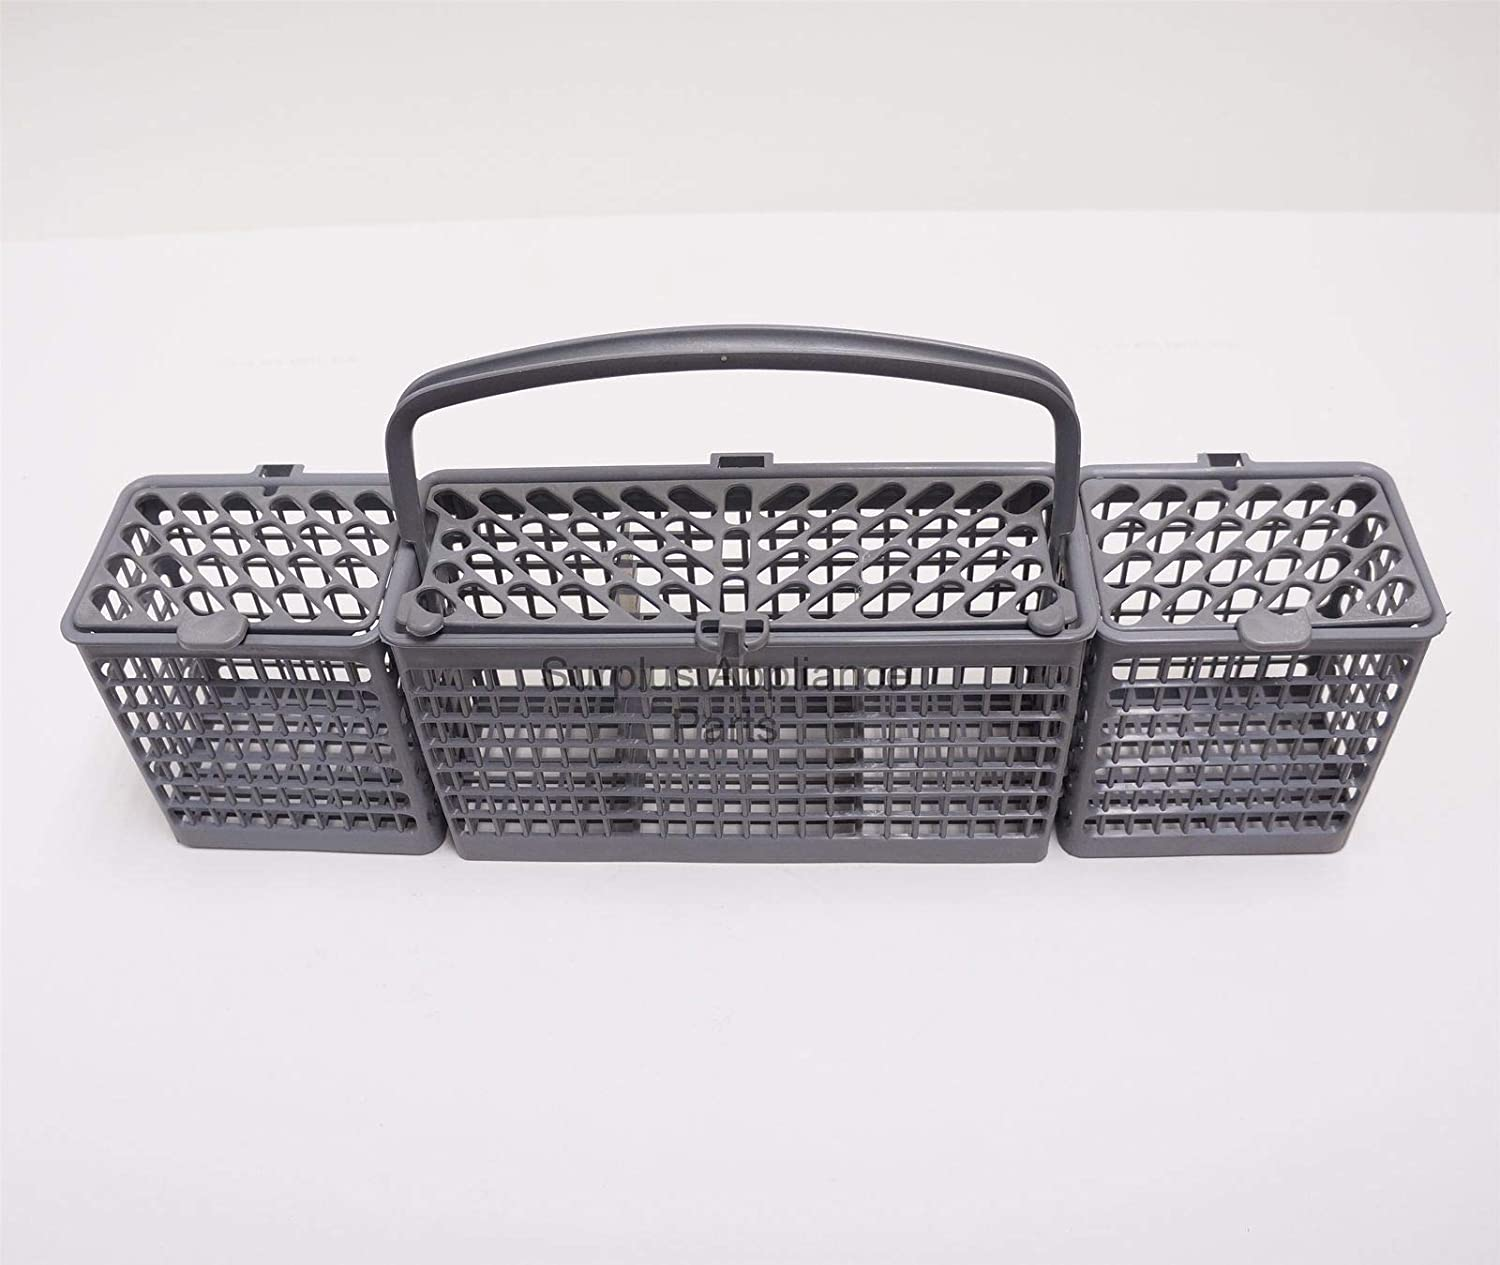 KHY Replacement Dishwasher Flatware Silverware Basket WD28X10182 FOR General Electric made Dishwashers including Hotpoint, RCA and some Kenmore.